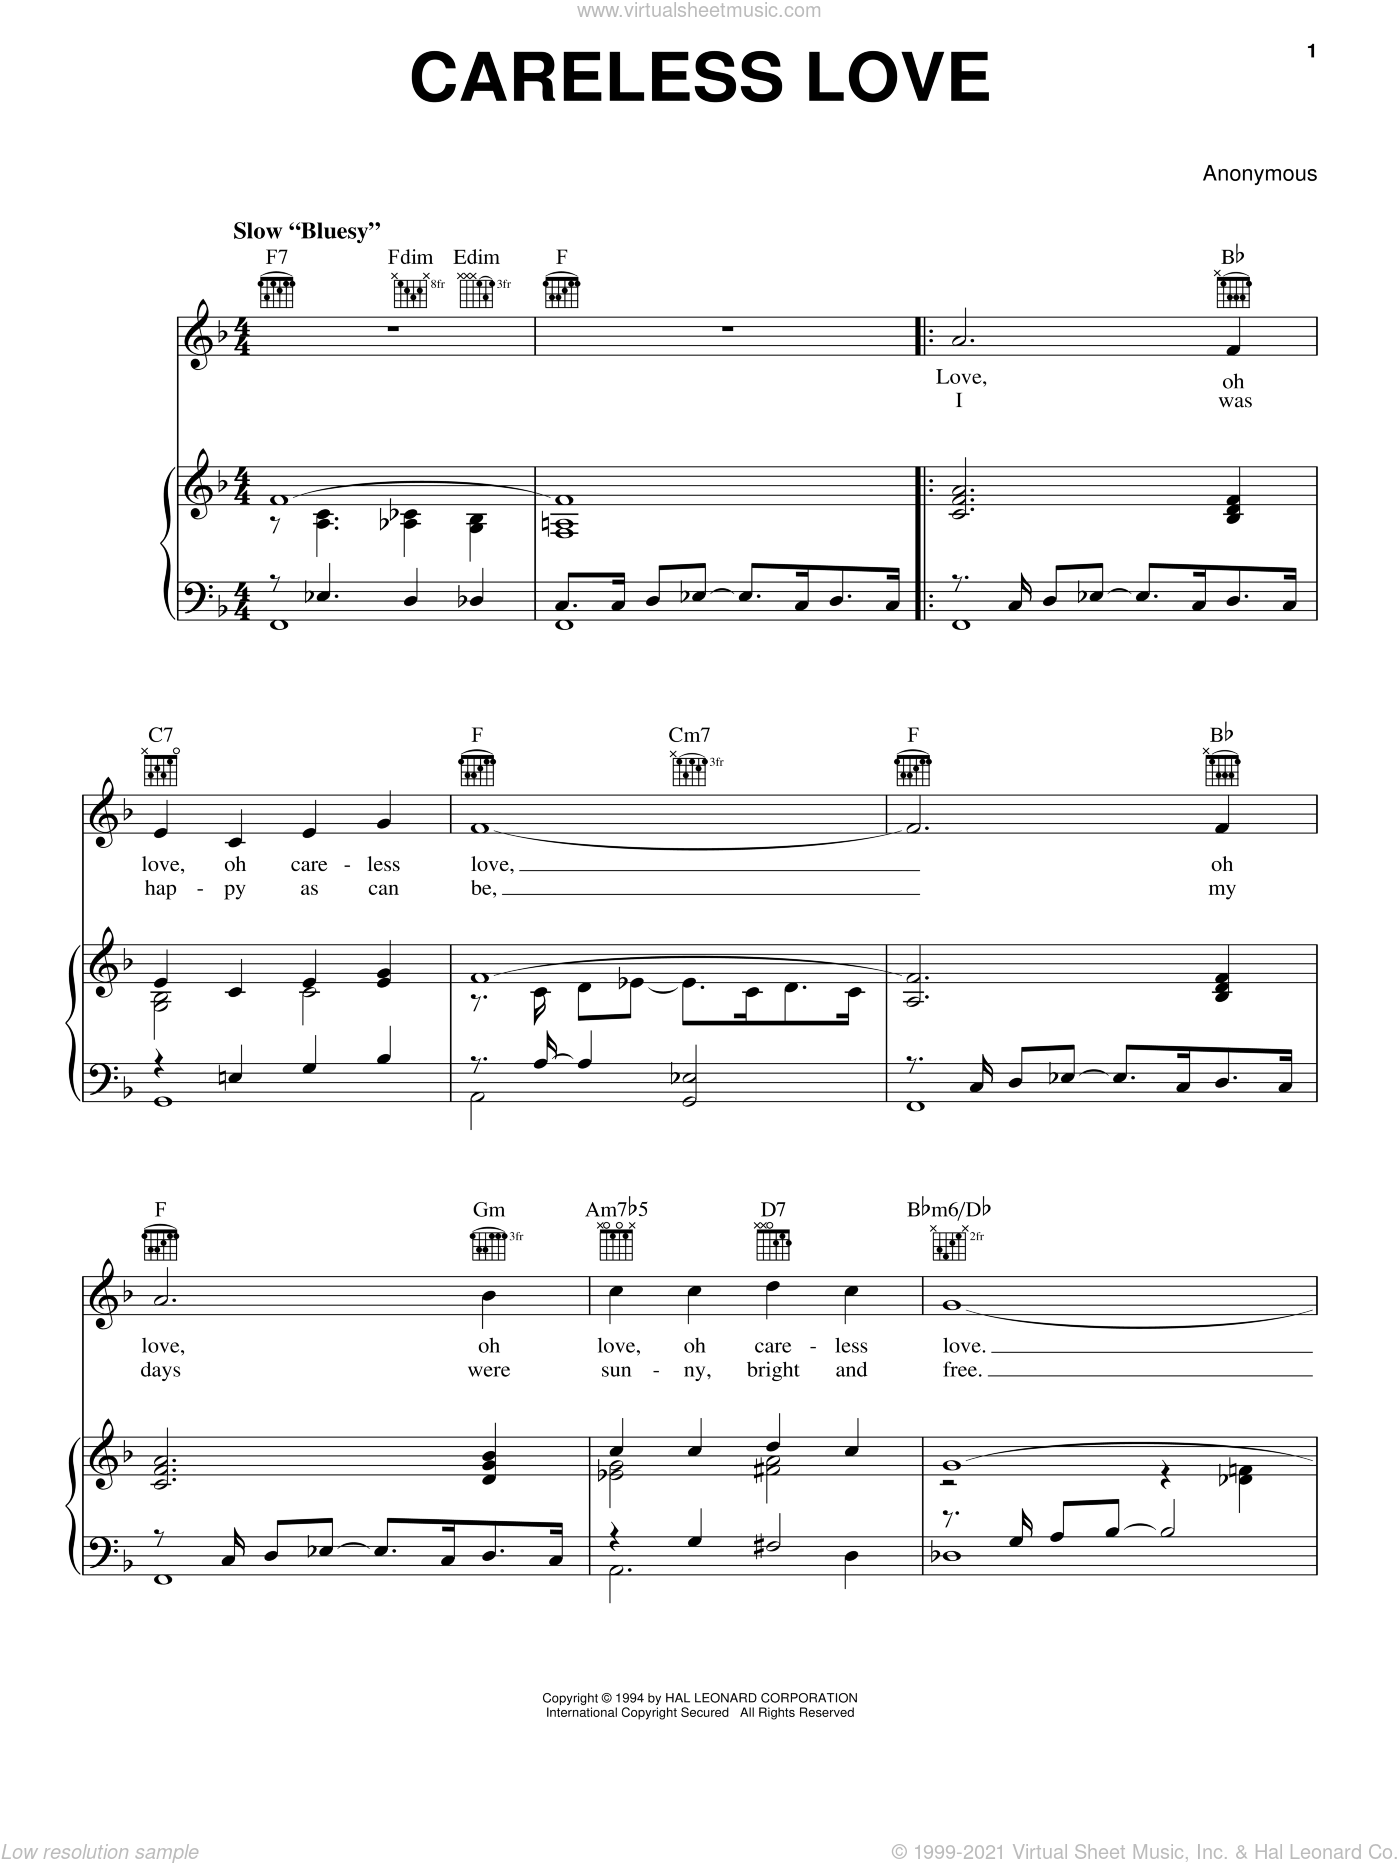 Careless Love sheet music for voice, piano or guitar by Anonymous